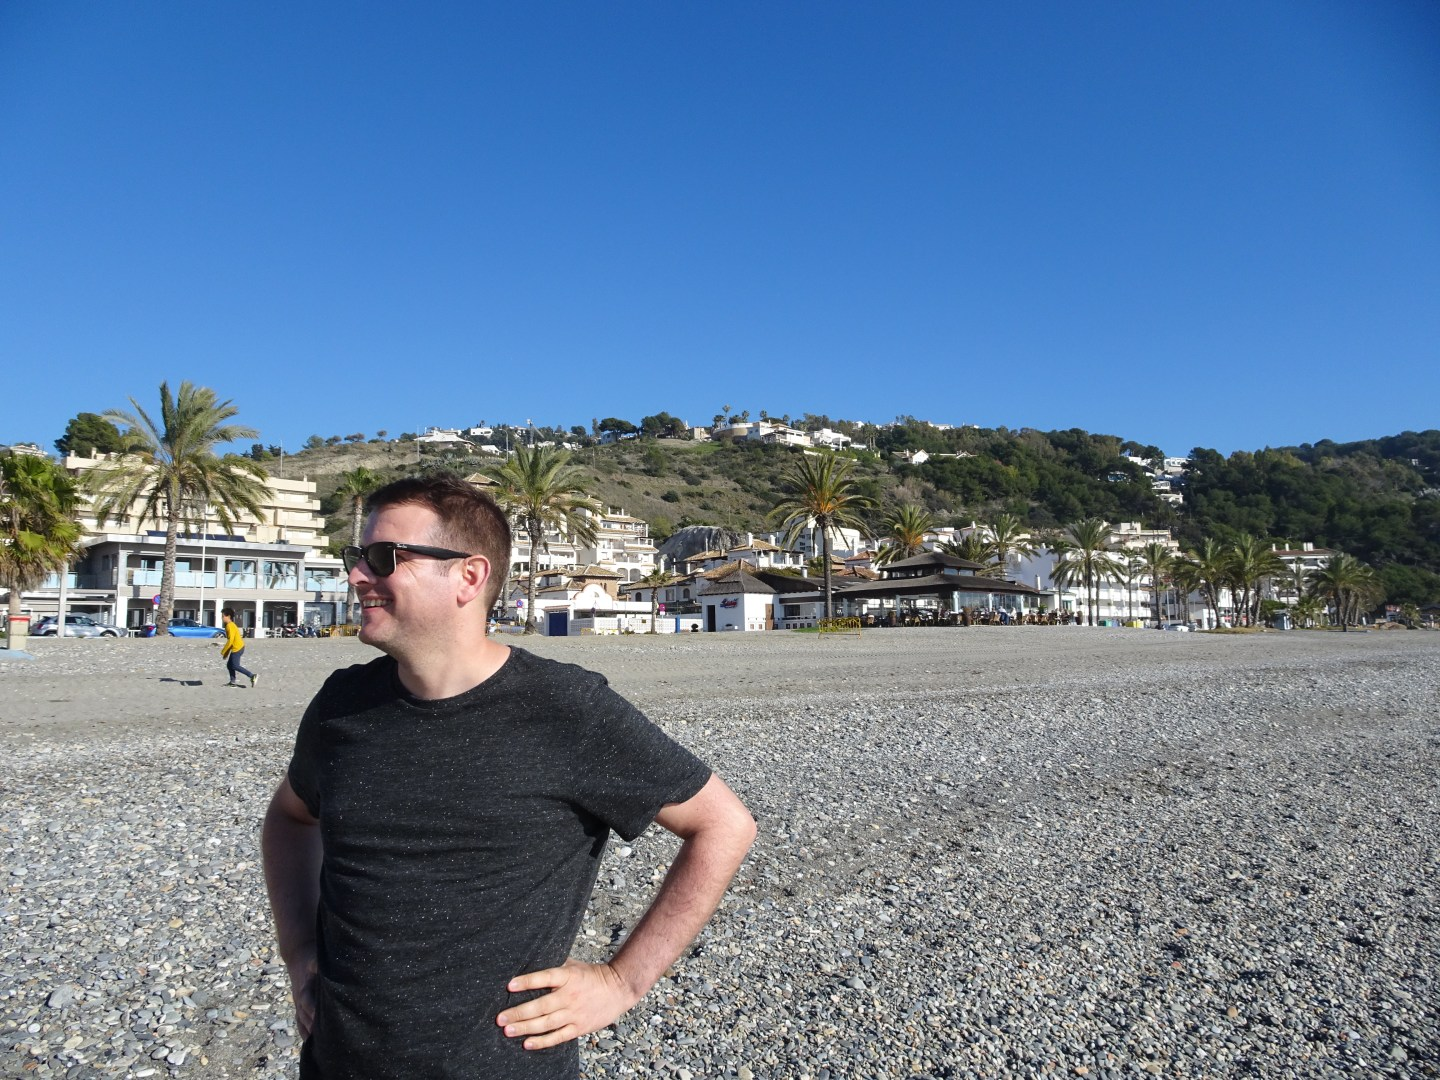 Costa Tropical Brad on La Herradura beach